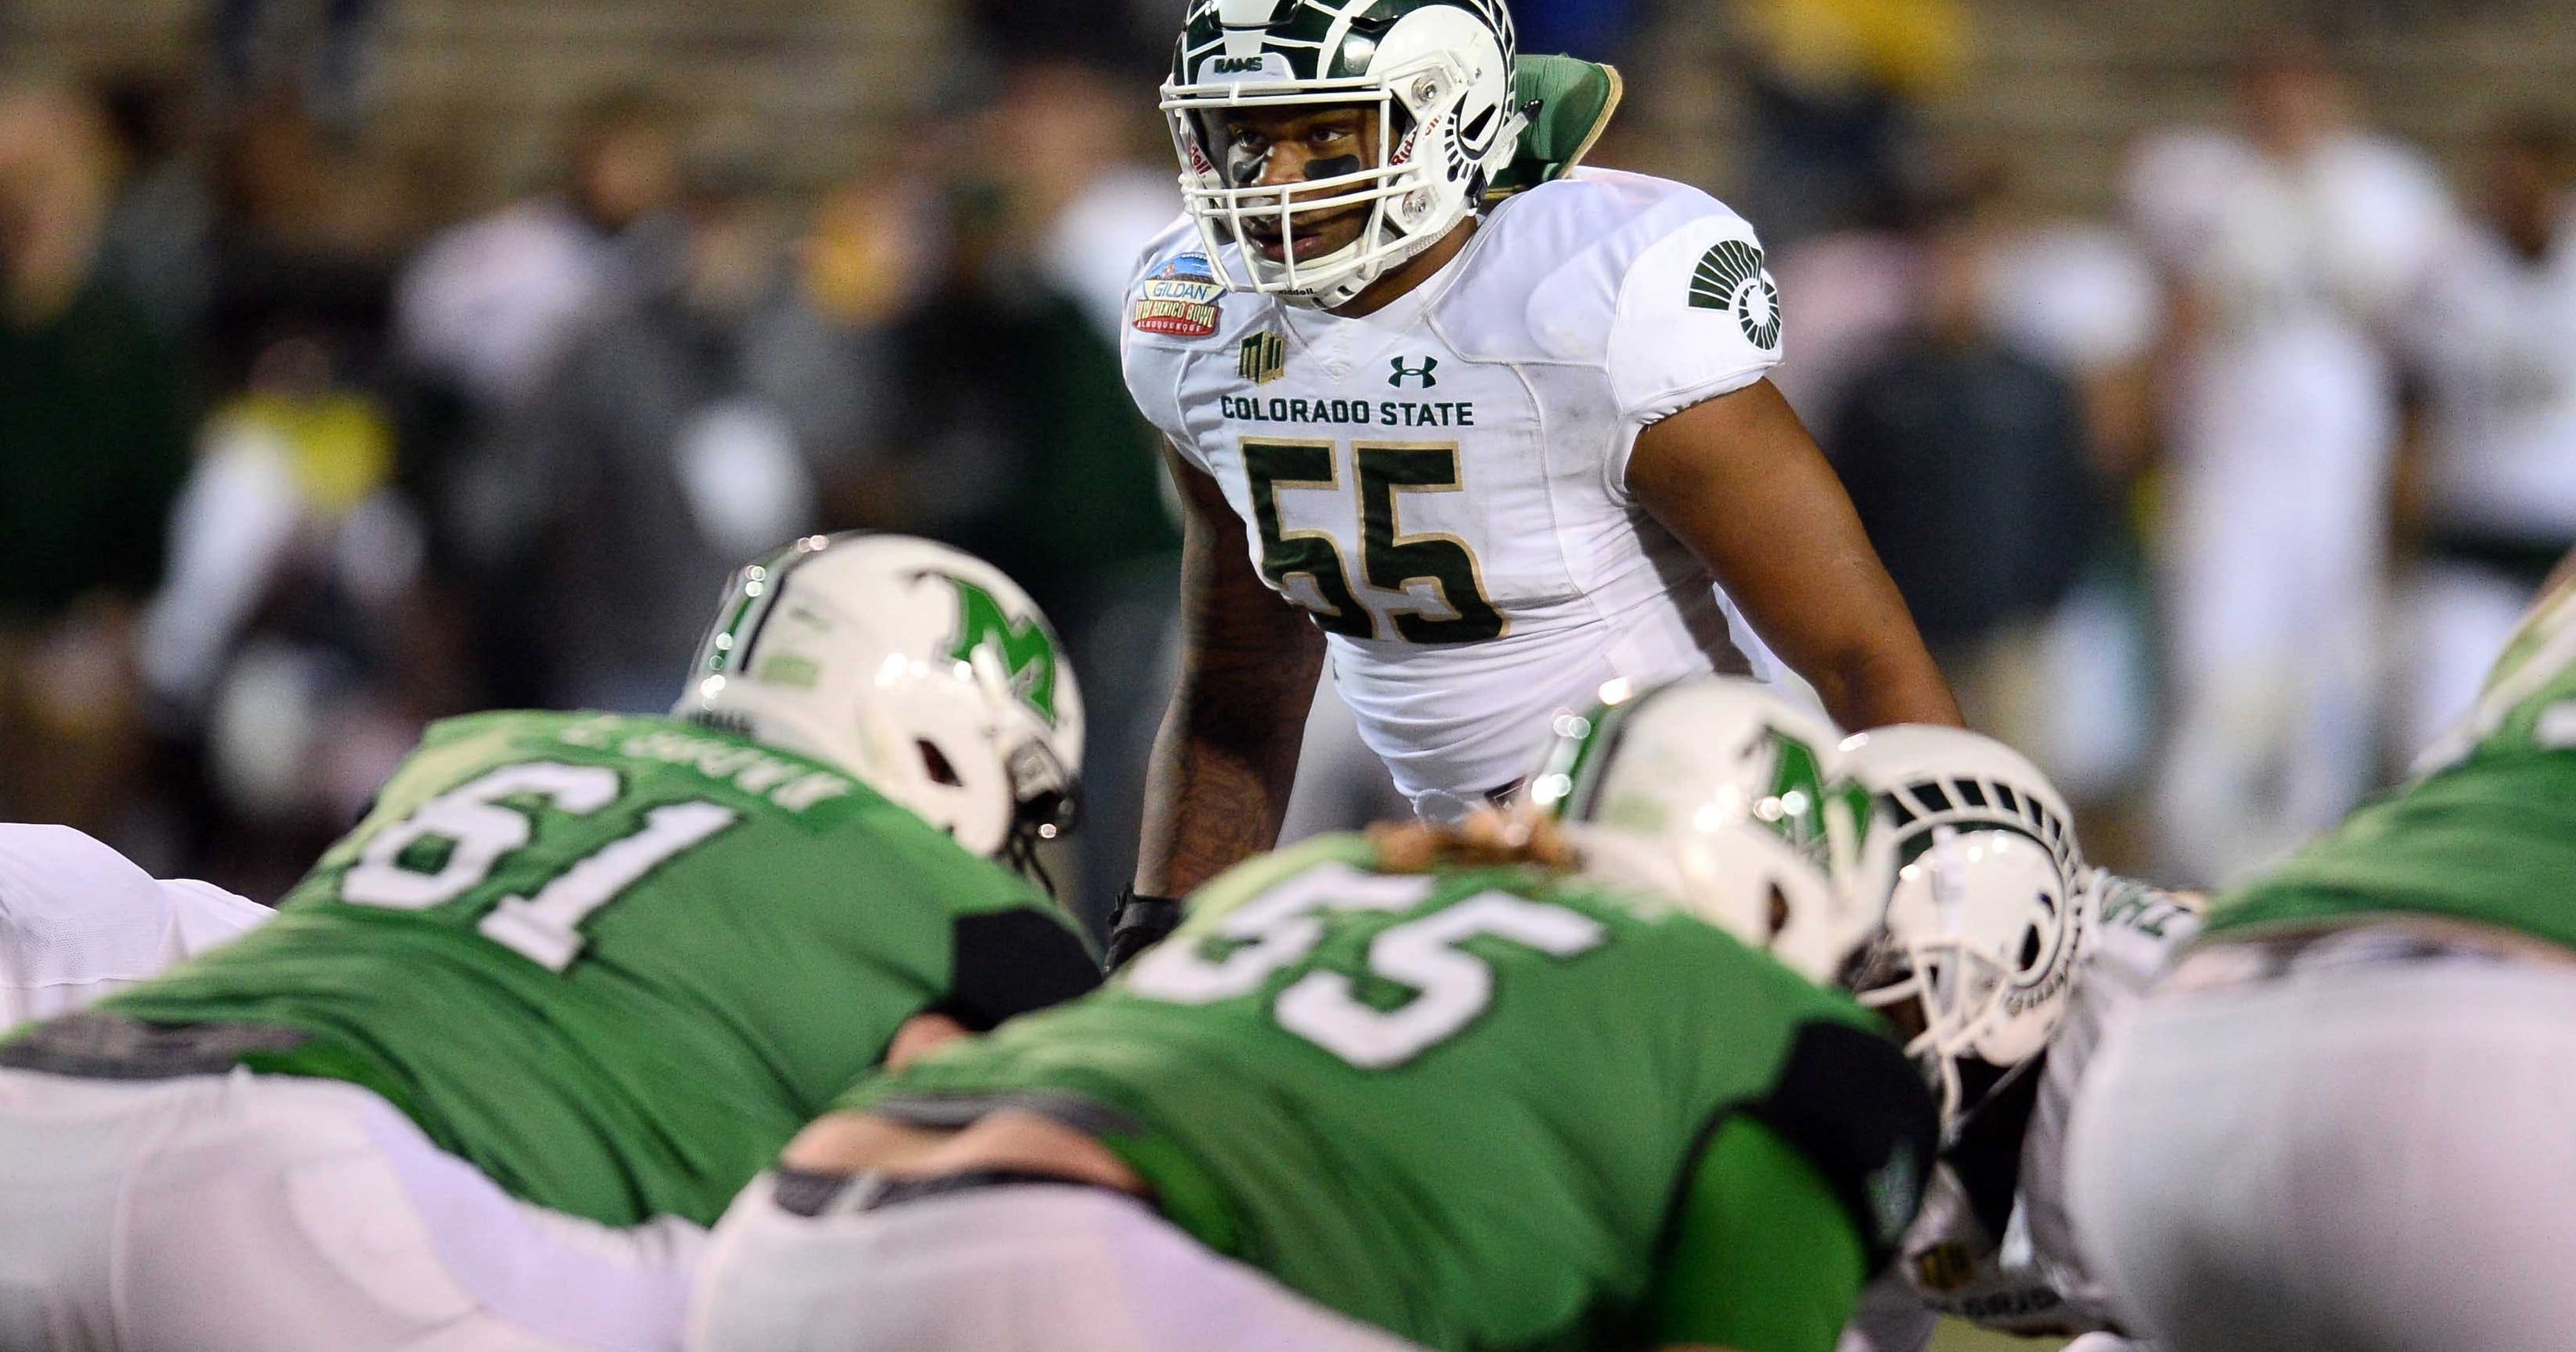 Colorado State University football is nation's least-experienced team